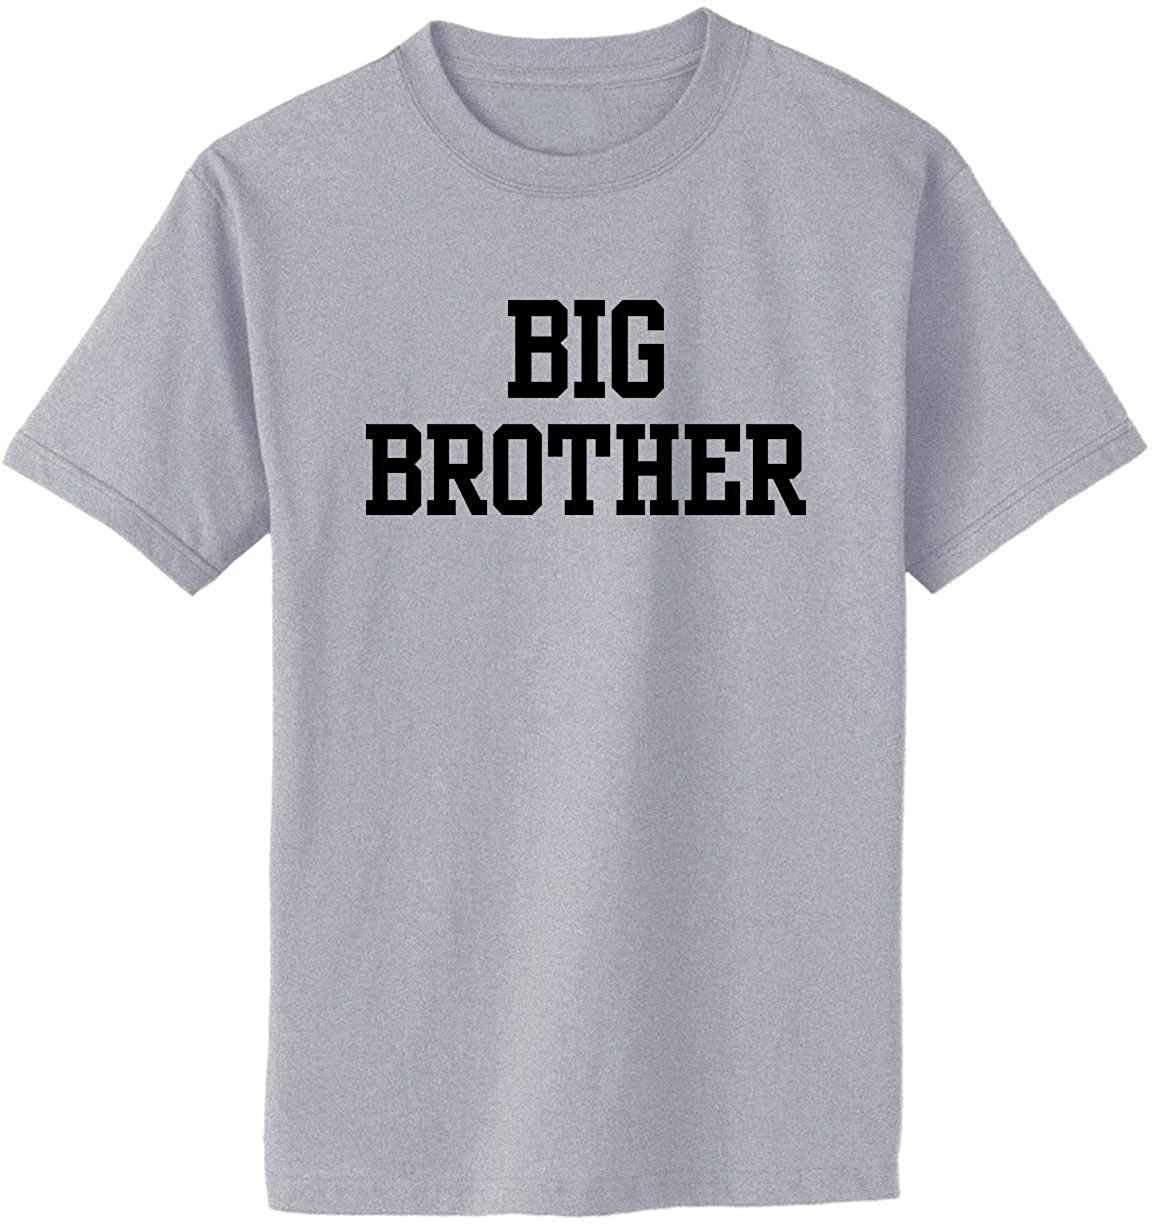 Big Brother On Adult Youth T-Shirt